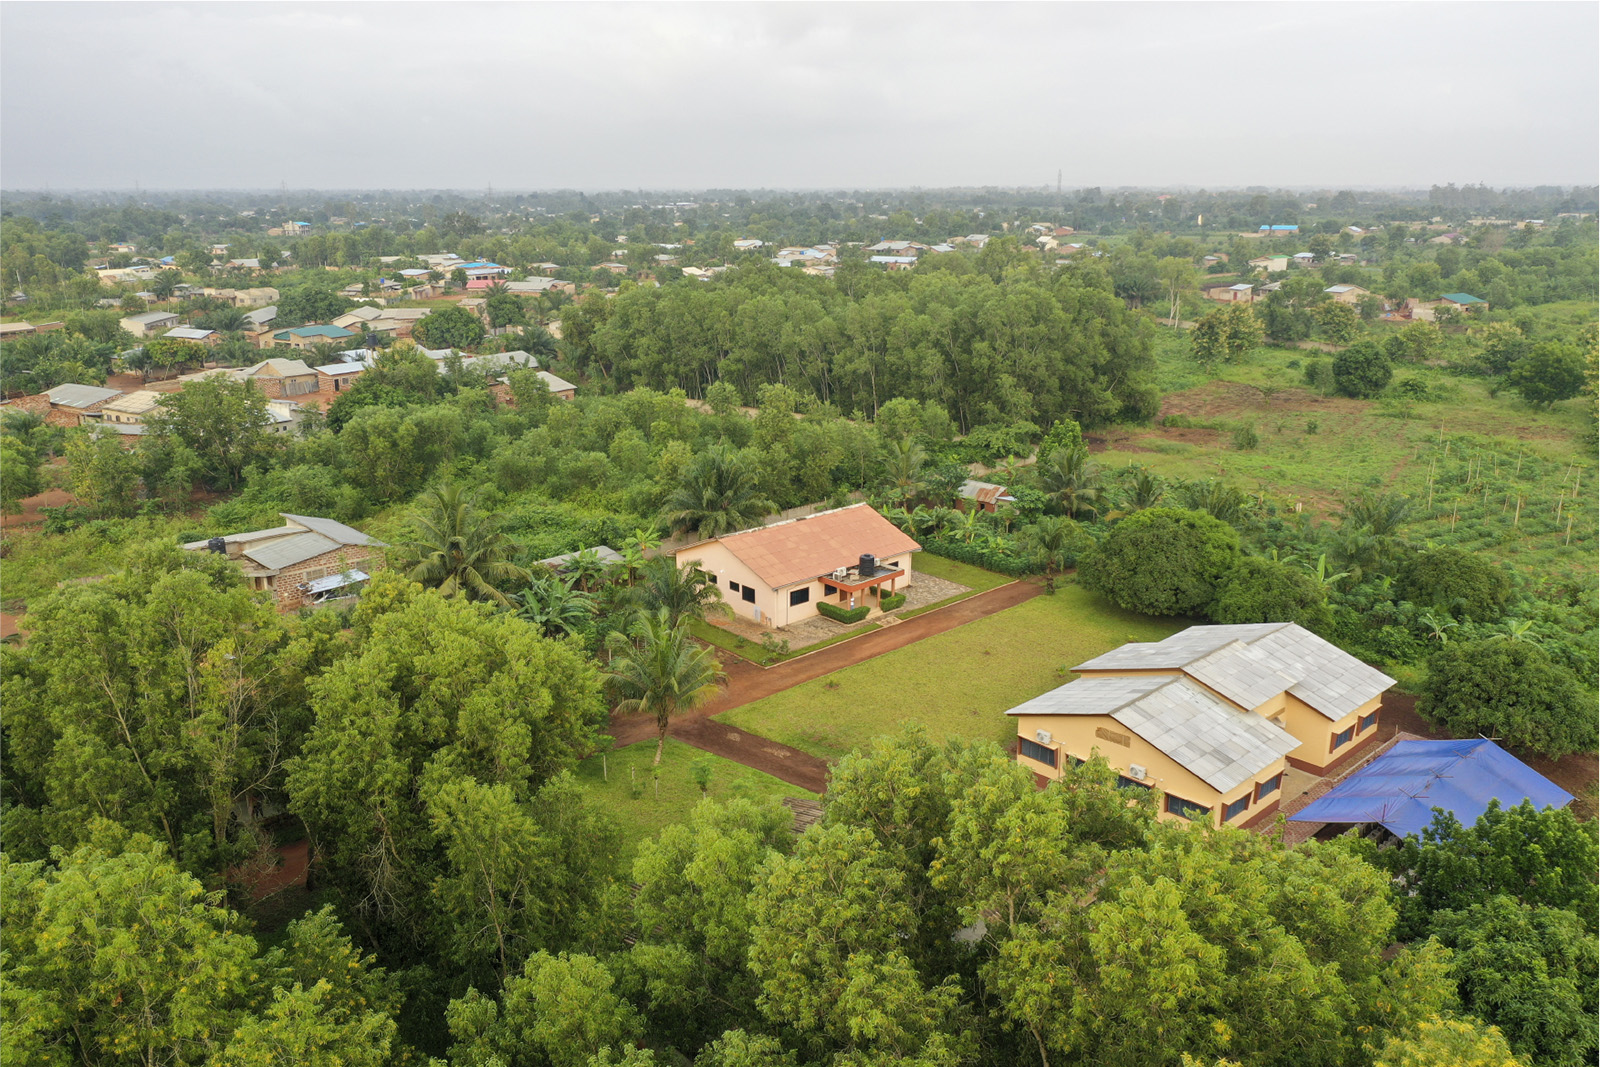 drone shot of the campus